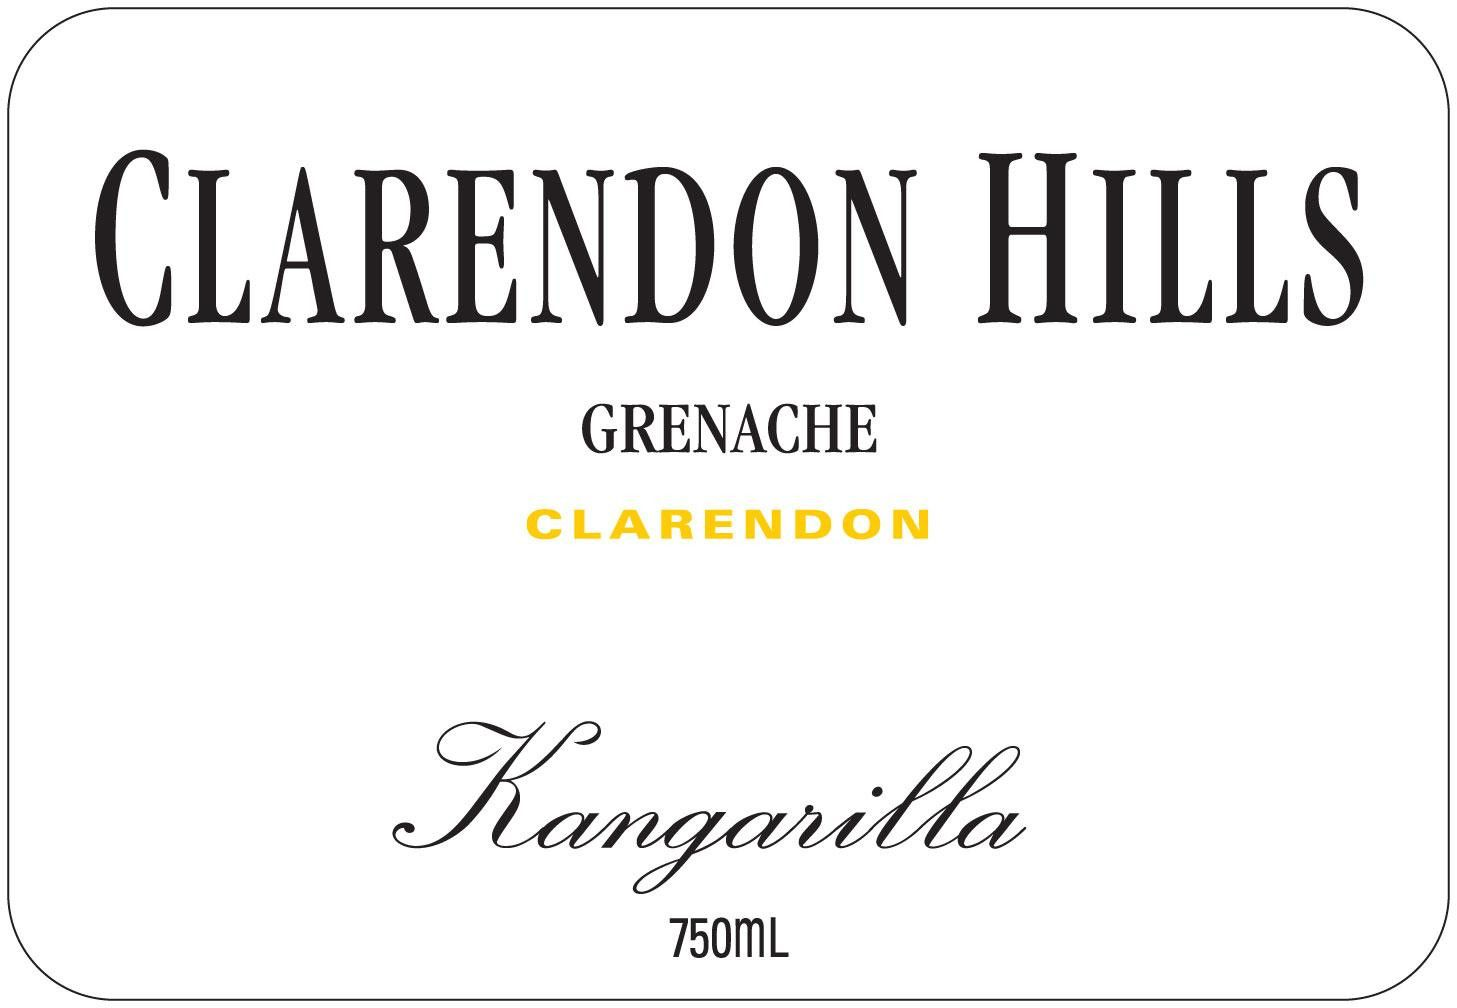 Clarendon Hills Kangarilla Grenache (scuffed labels) 2003  Front Label